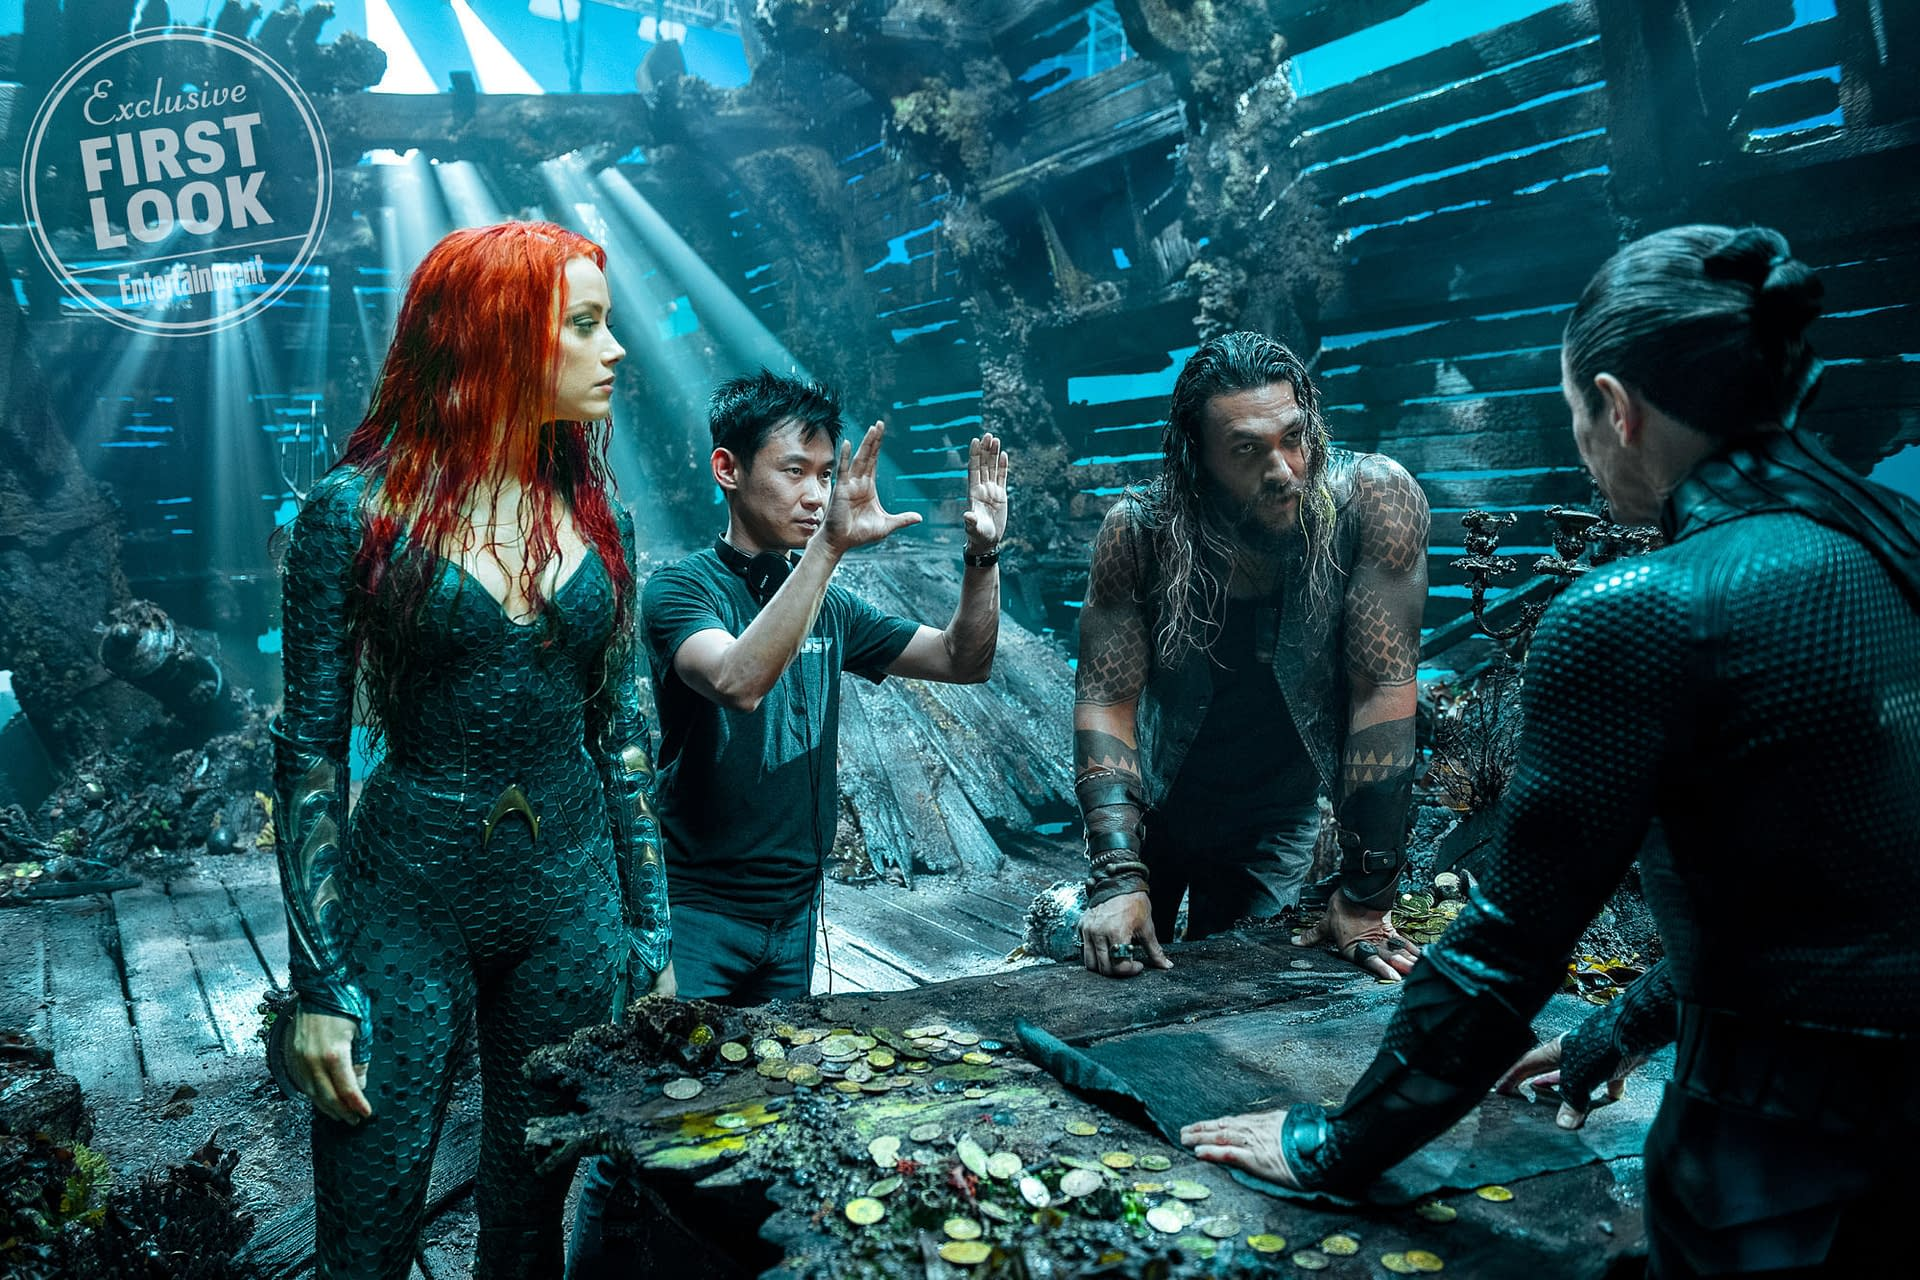 James Wan Talks About Keeping Aquaman a Self-Contained Film